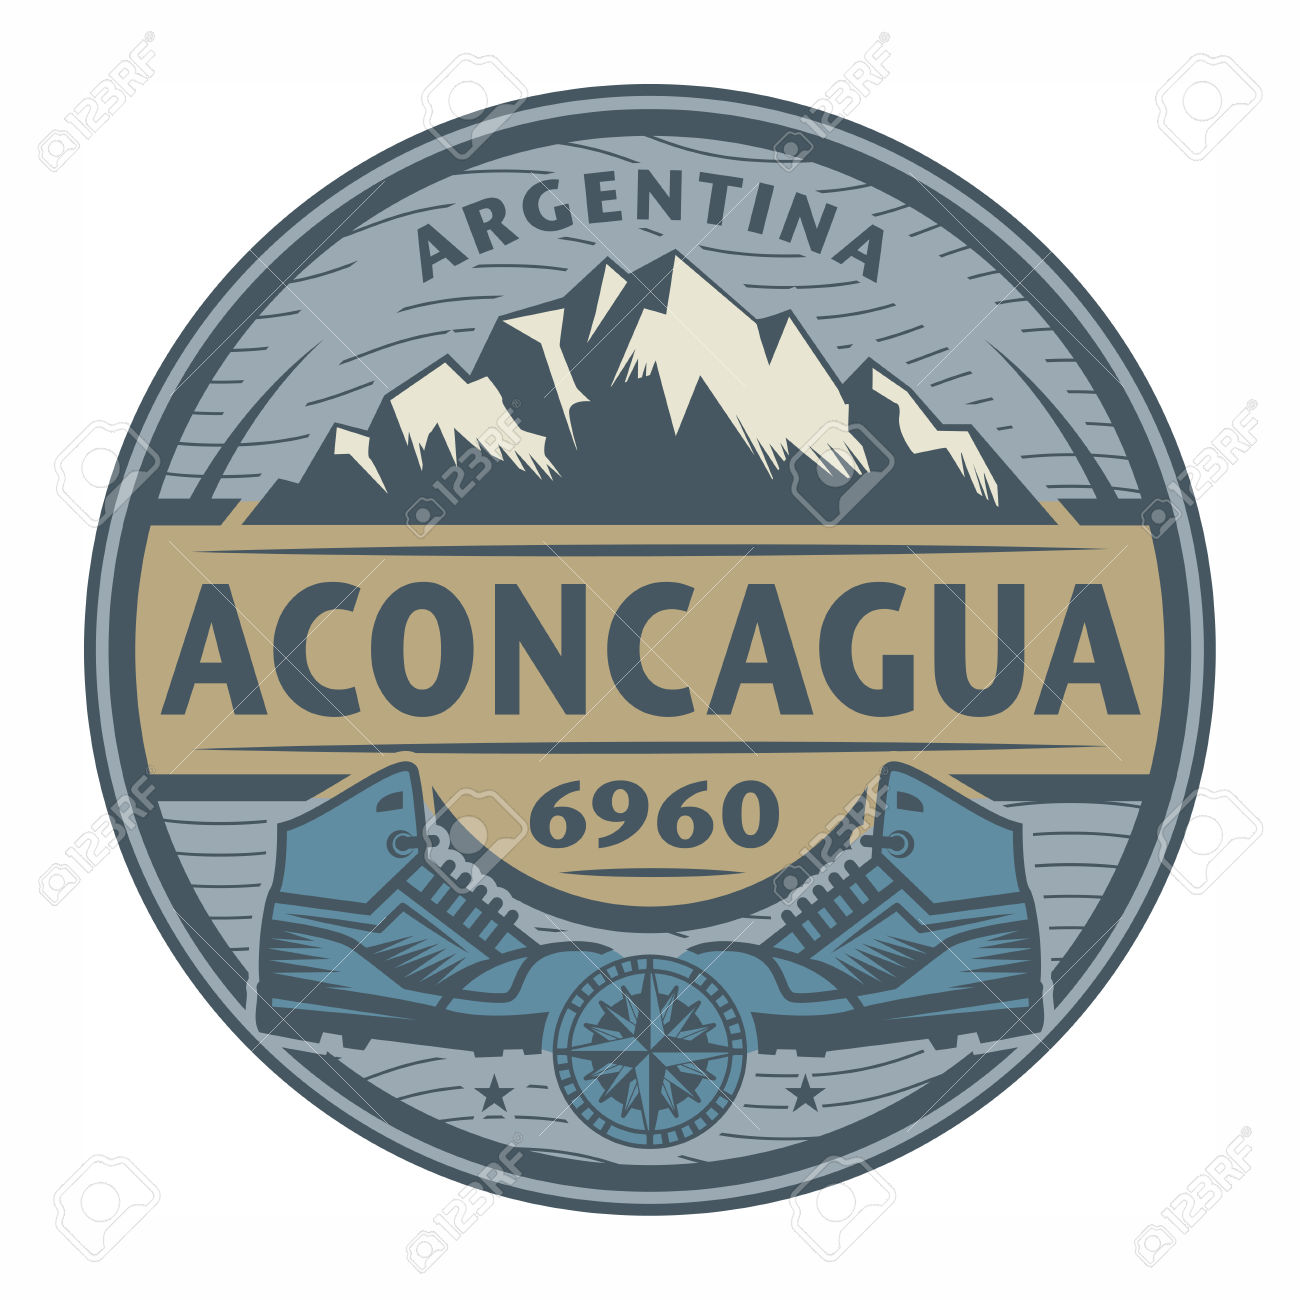 Stamp Or Emblem With Text Aconcagua, Argentina, Vector.